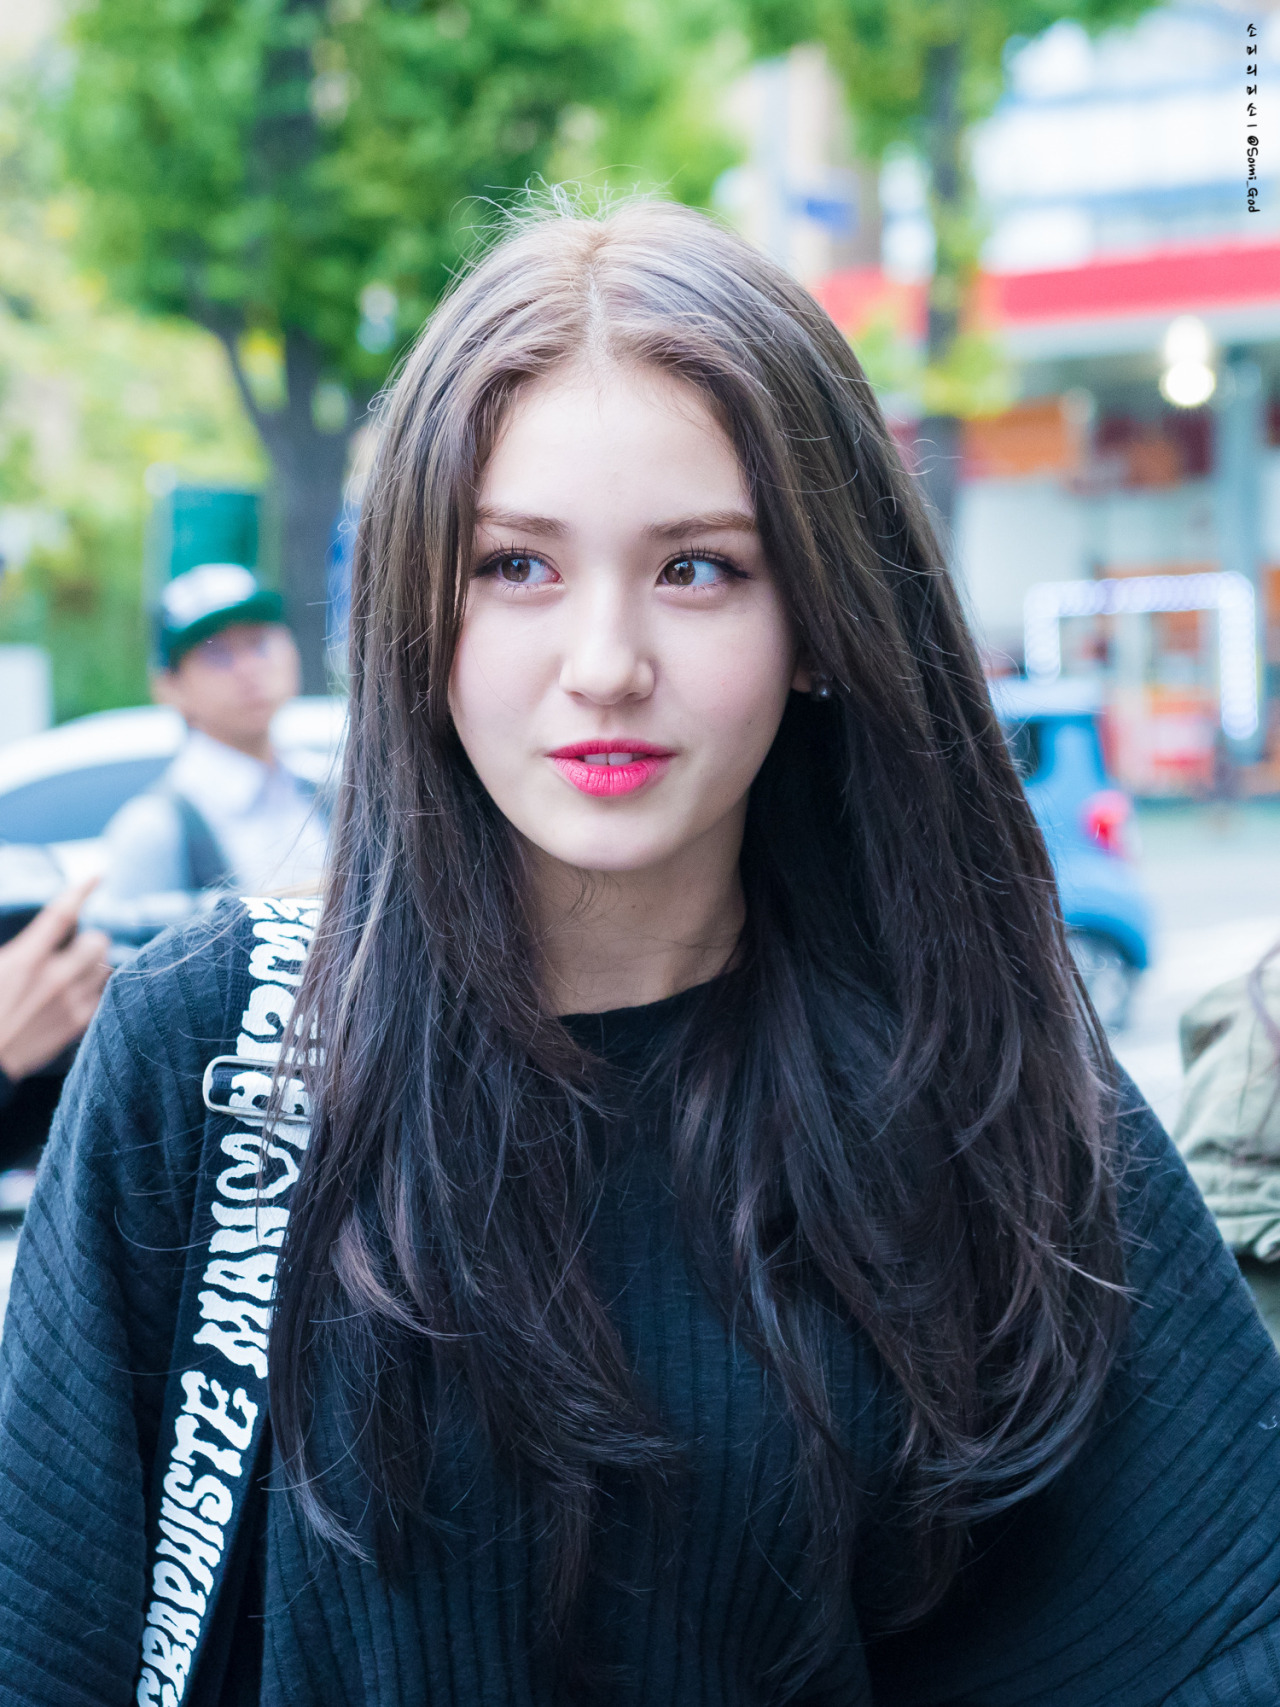 Iphone Pretty Wallpaper Jeon Somi Android Iphone Wallpaper 92067 Asiachan Kpop